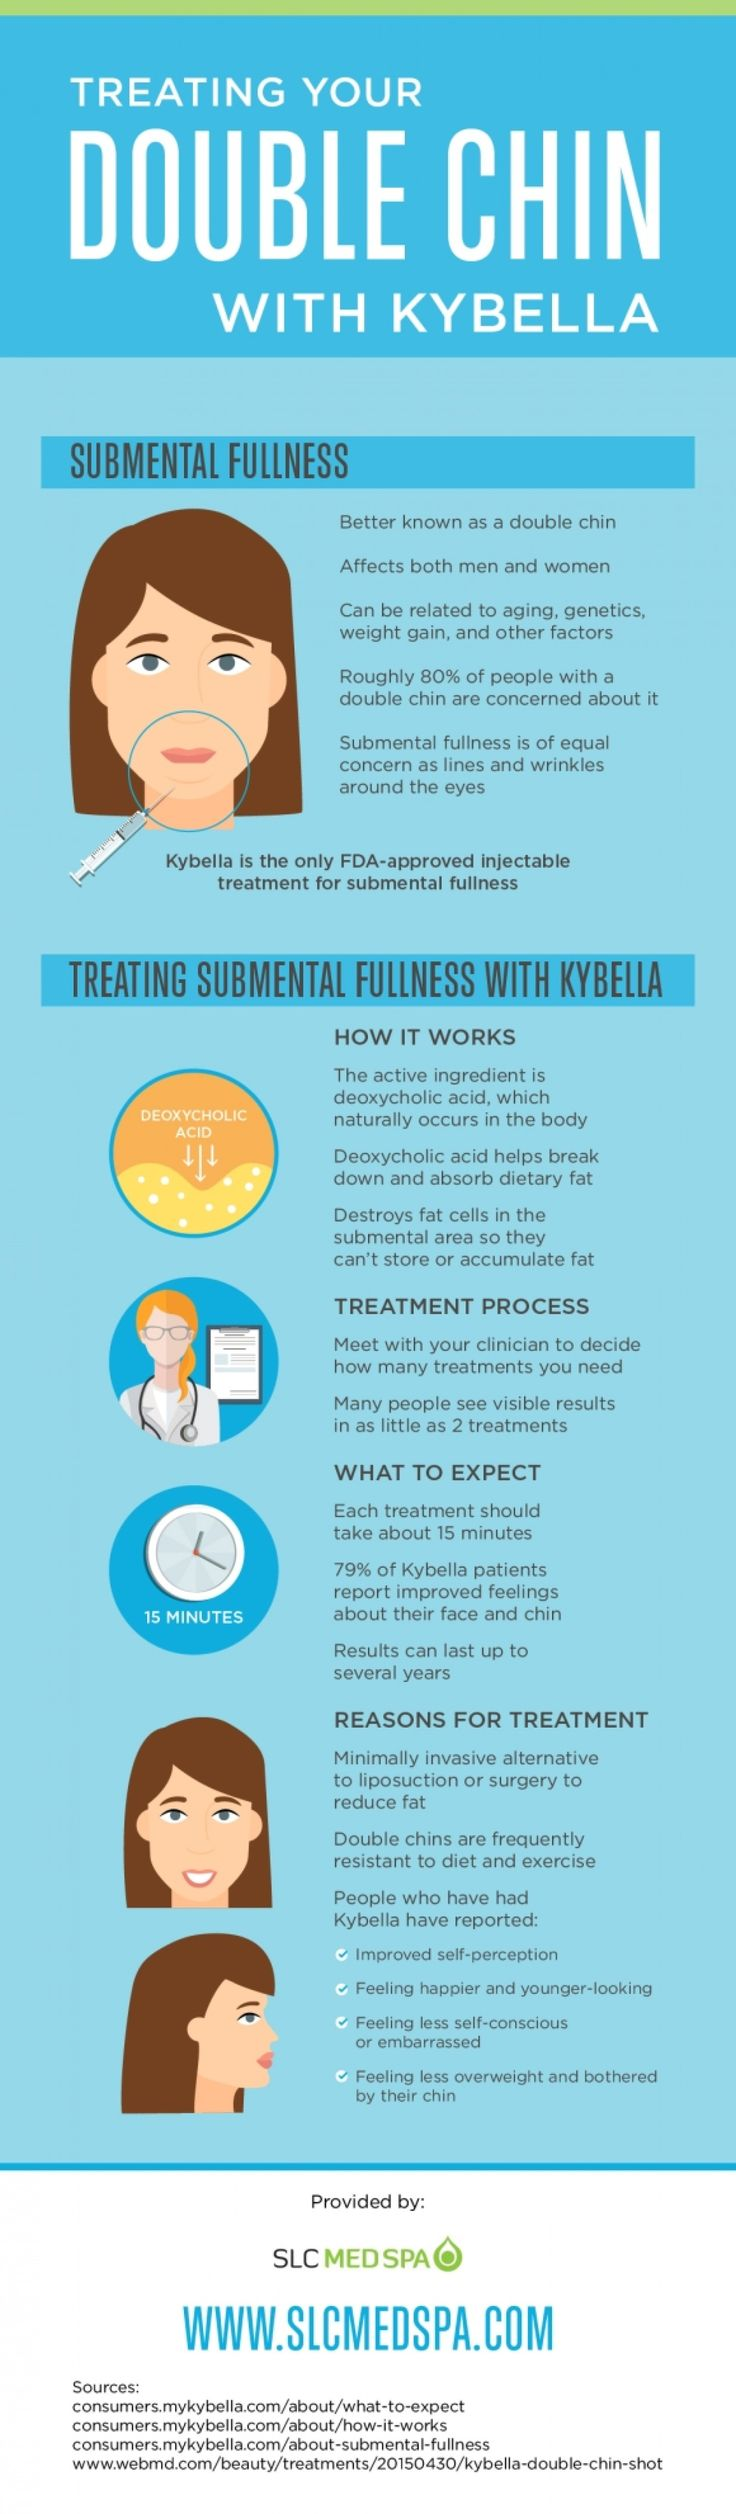 Treating Your Double Chin with Kybella Infographic